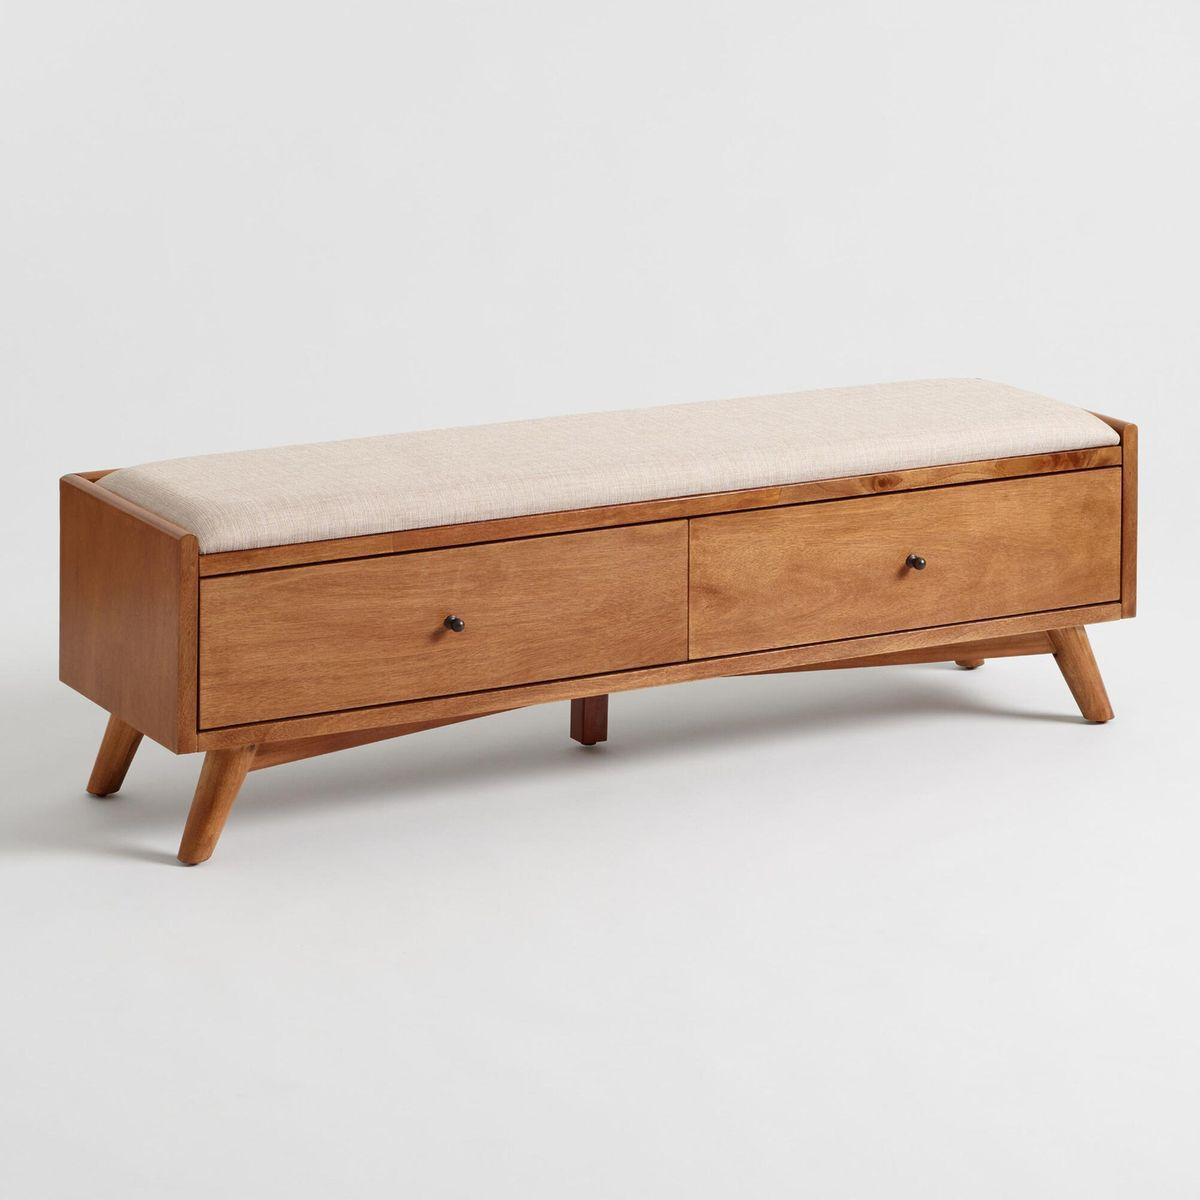 Low wooden bench with upholstered seat.